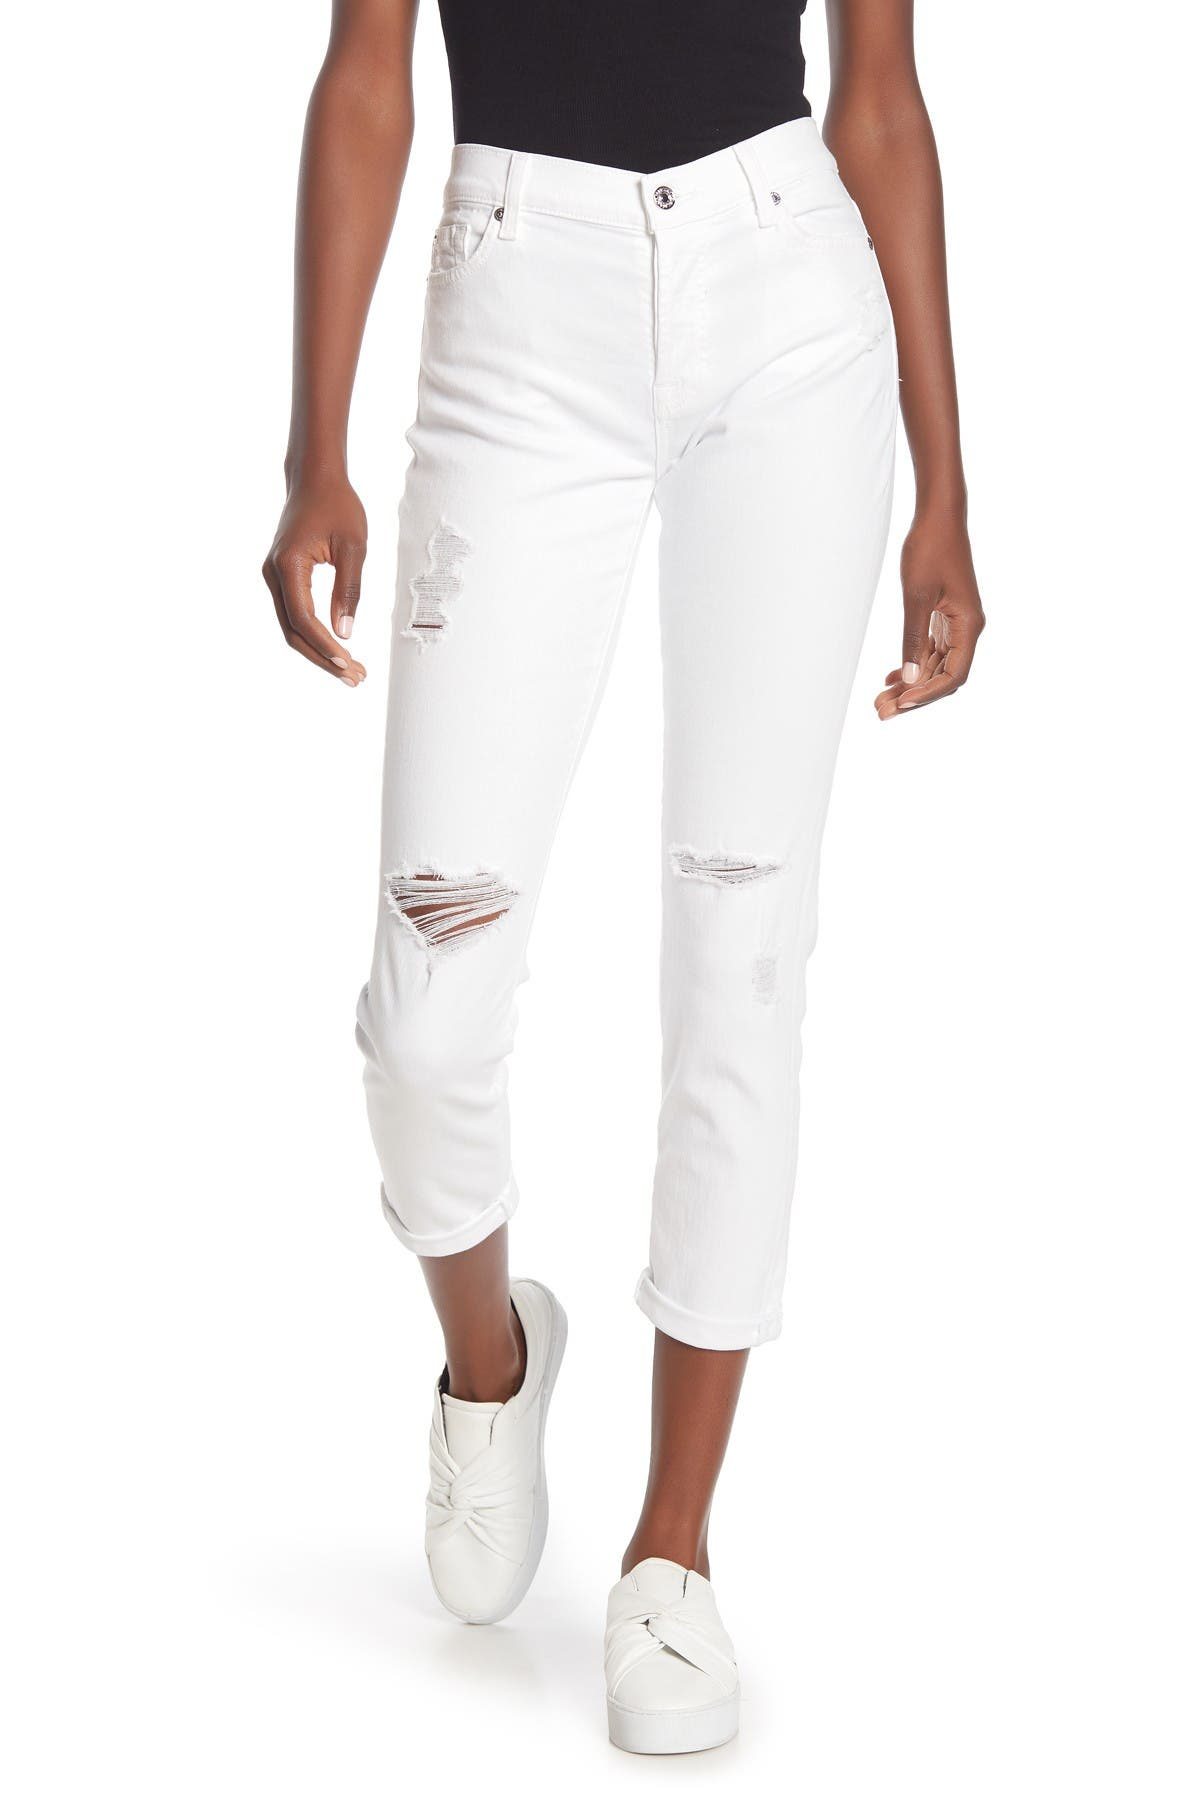 Image of 7 For All Mankind Josefina Distressed Jeans